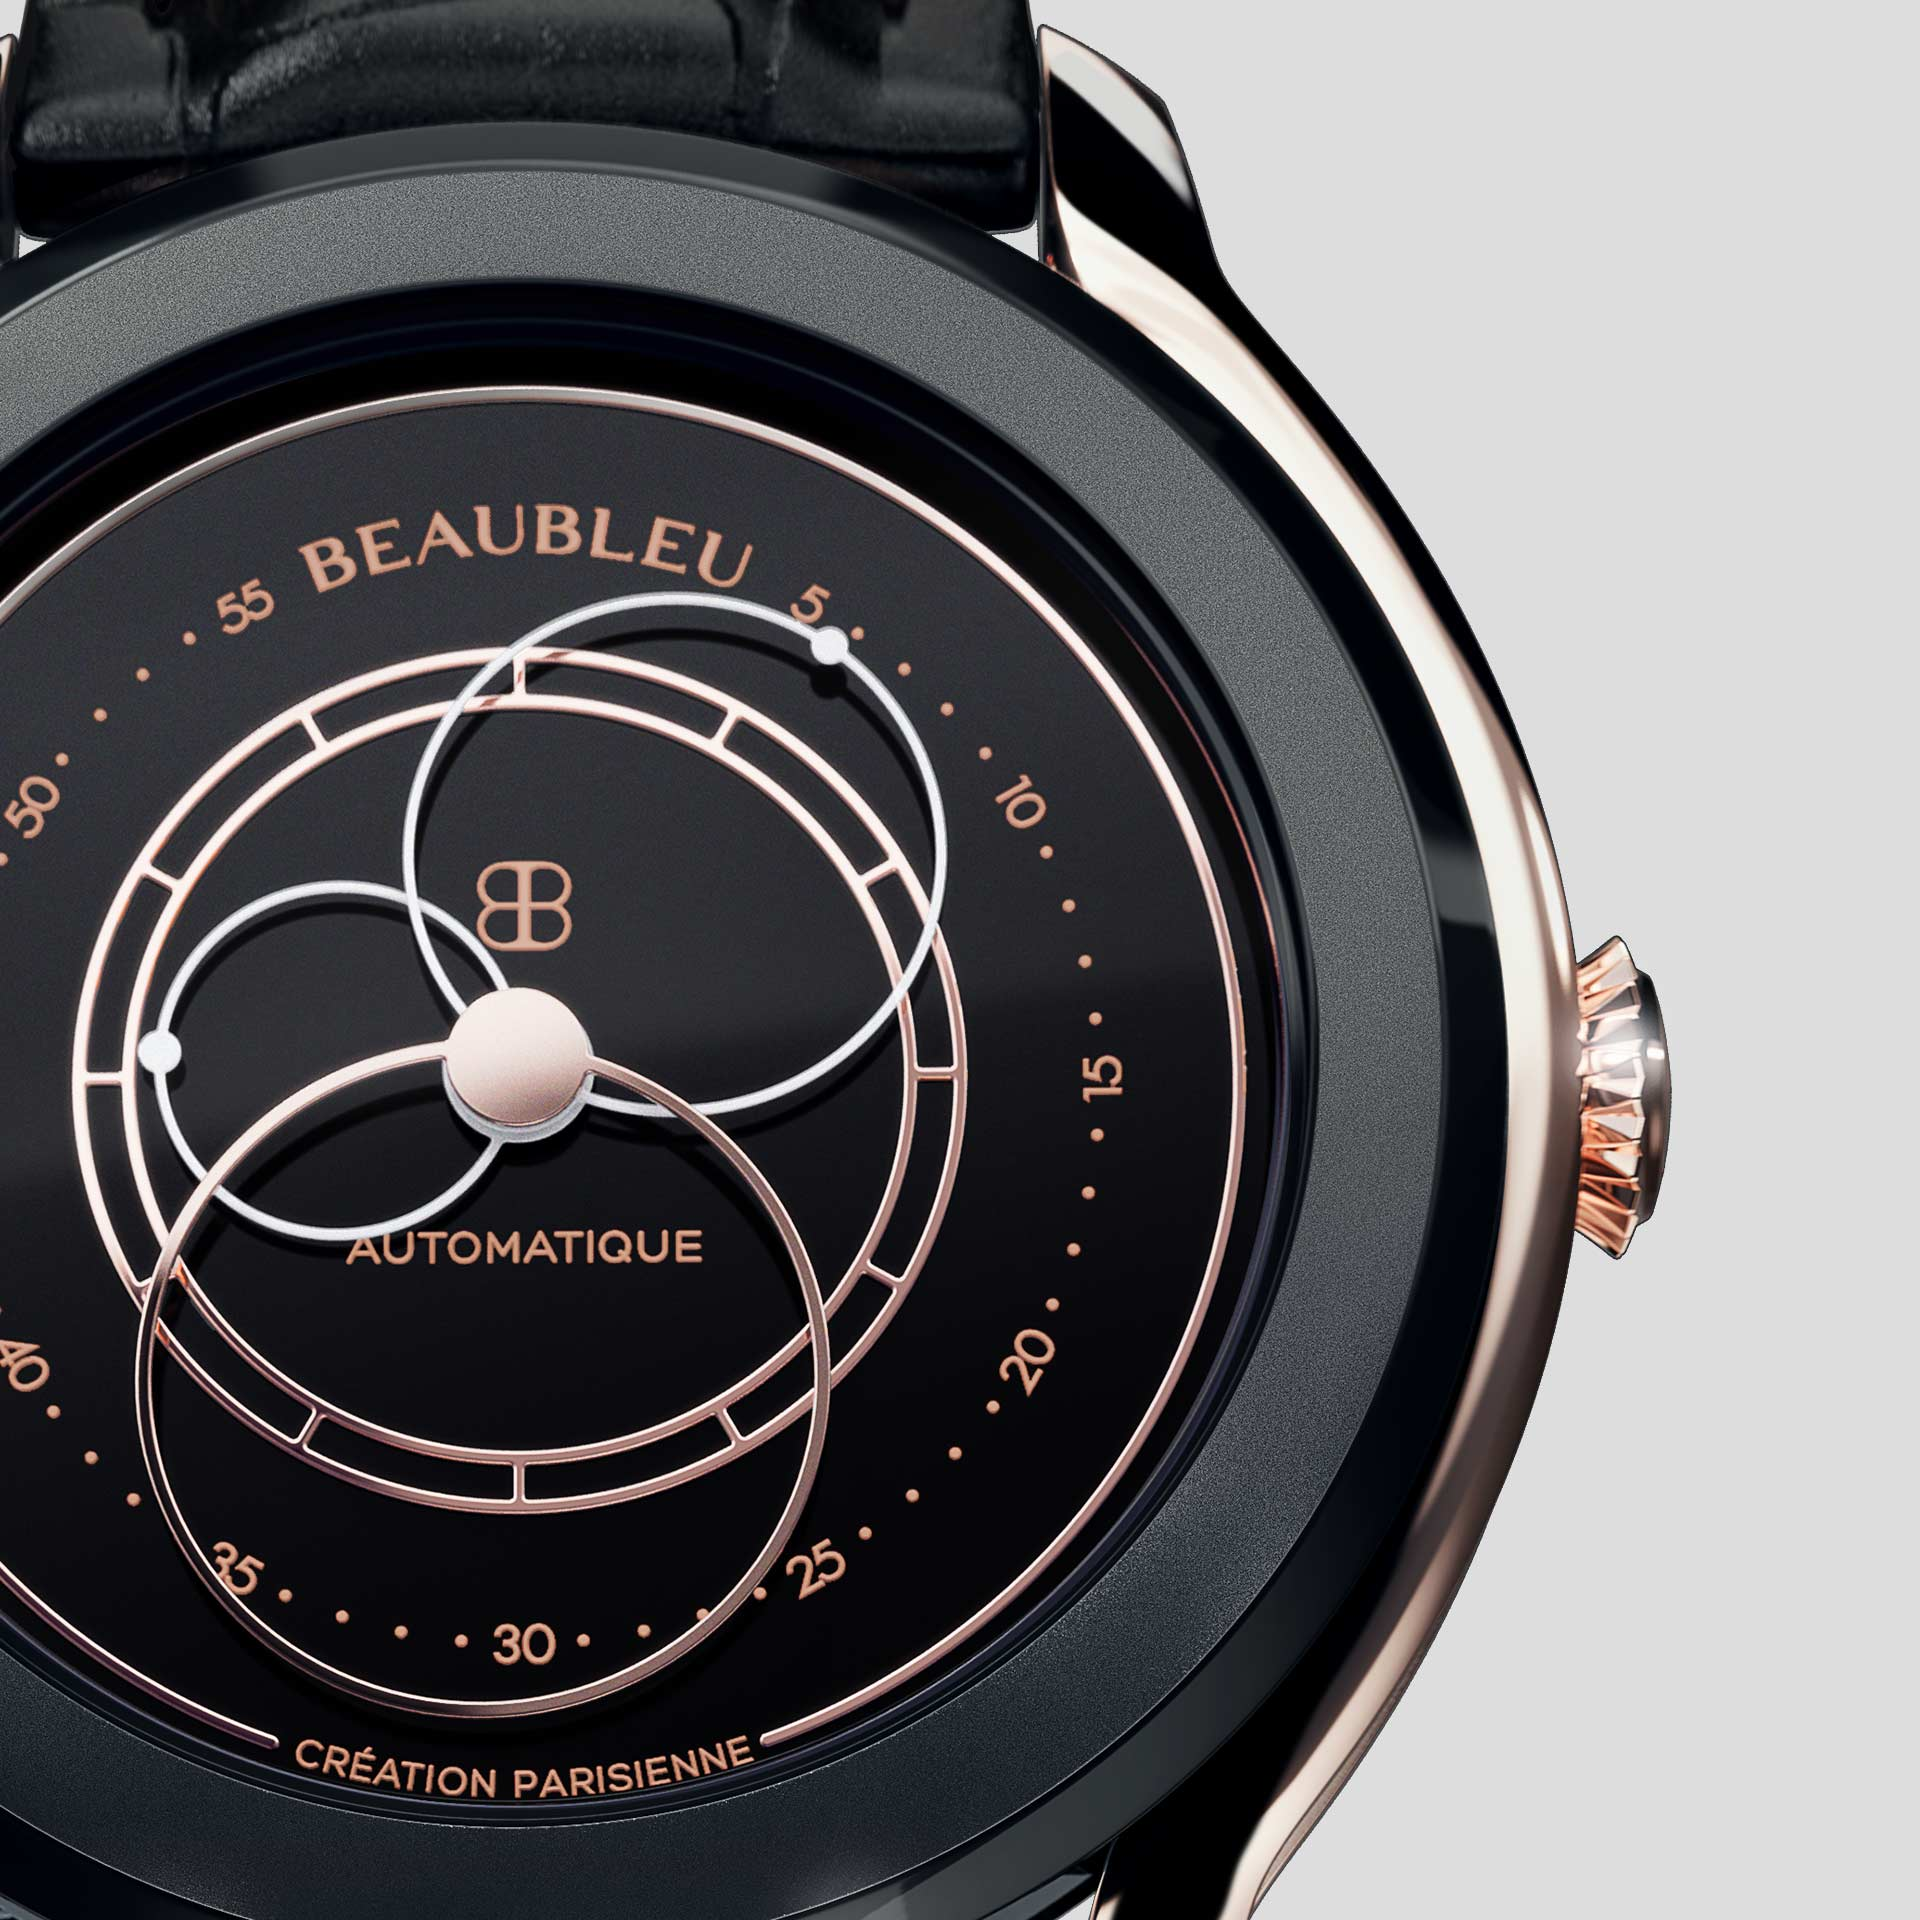 Beaubleu Union collection circular hands automatic watch Black Audace zoom on dial